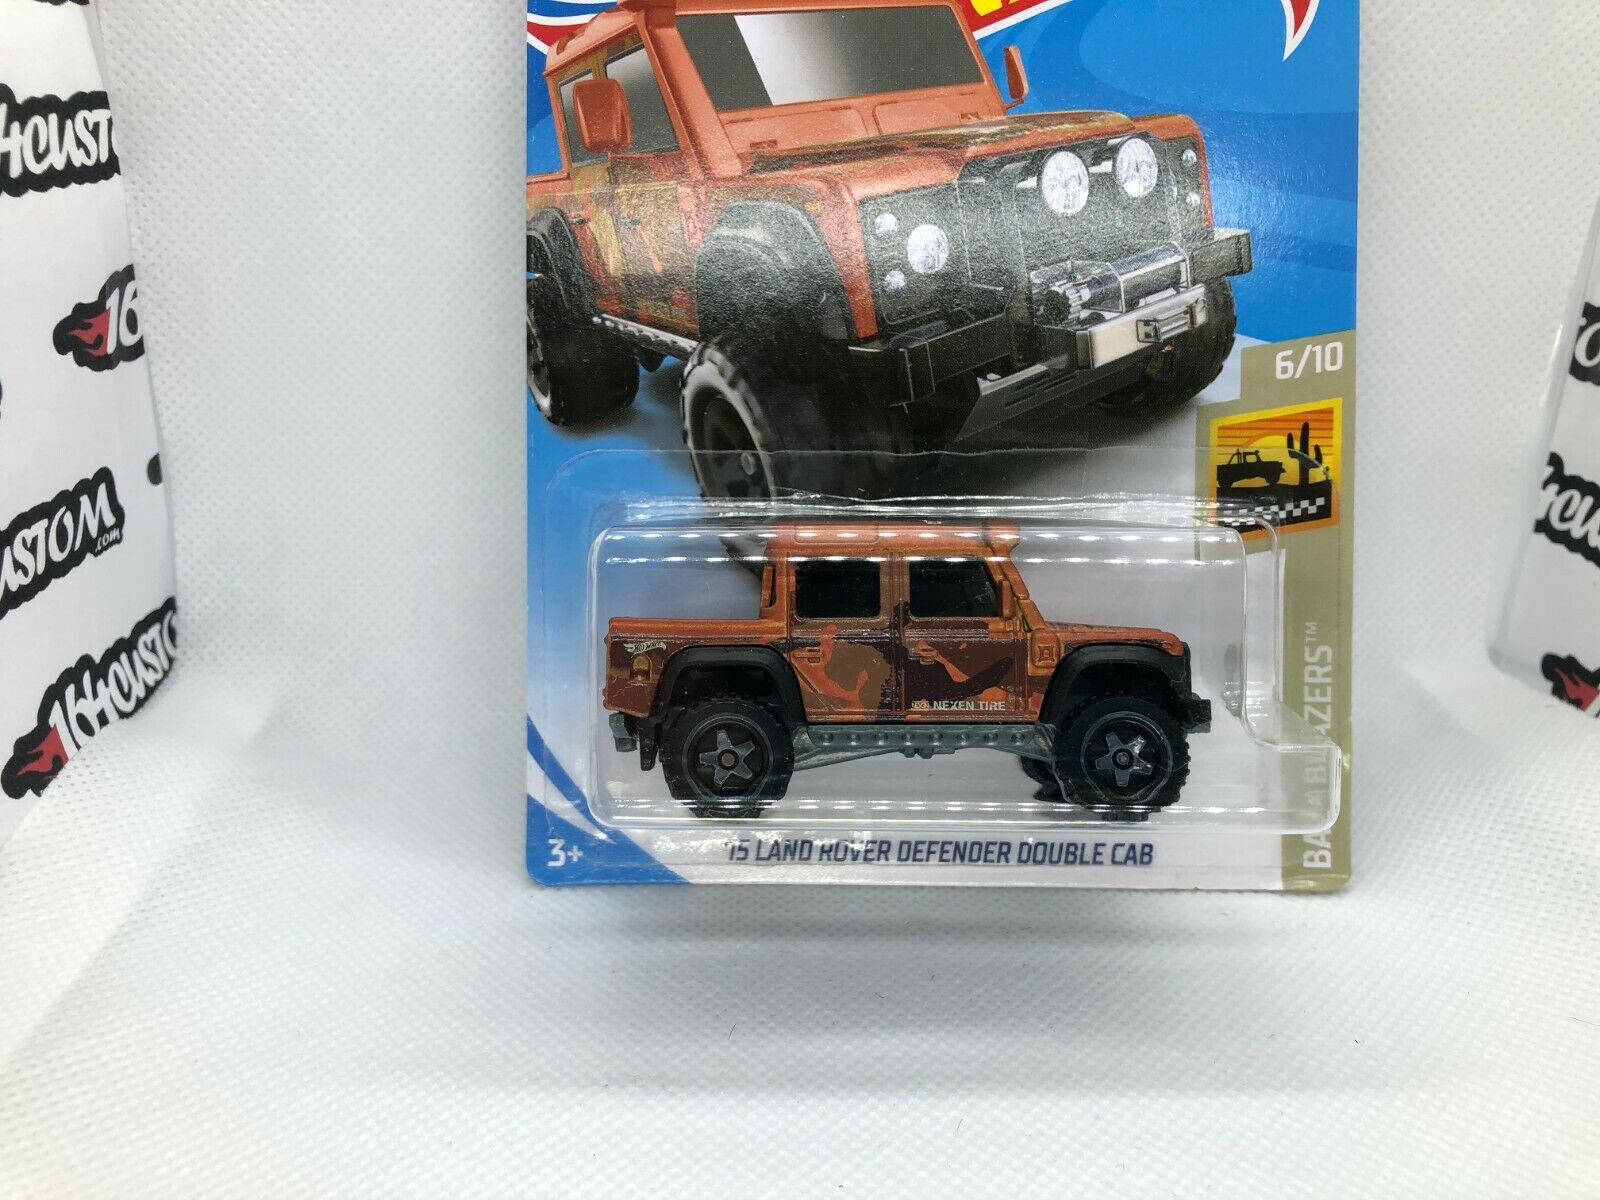 15 Land Rover Defender Double Cab